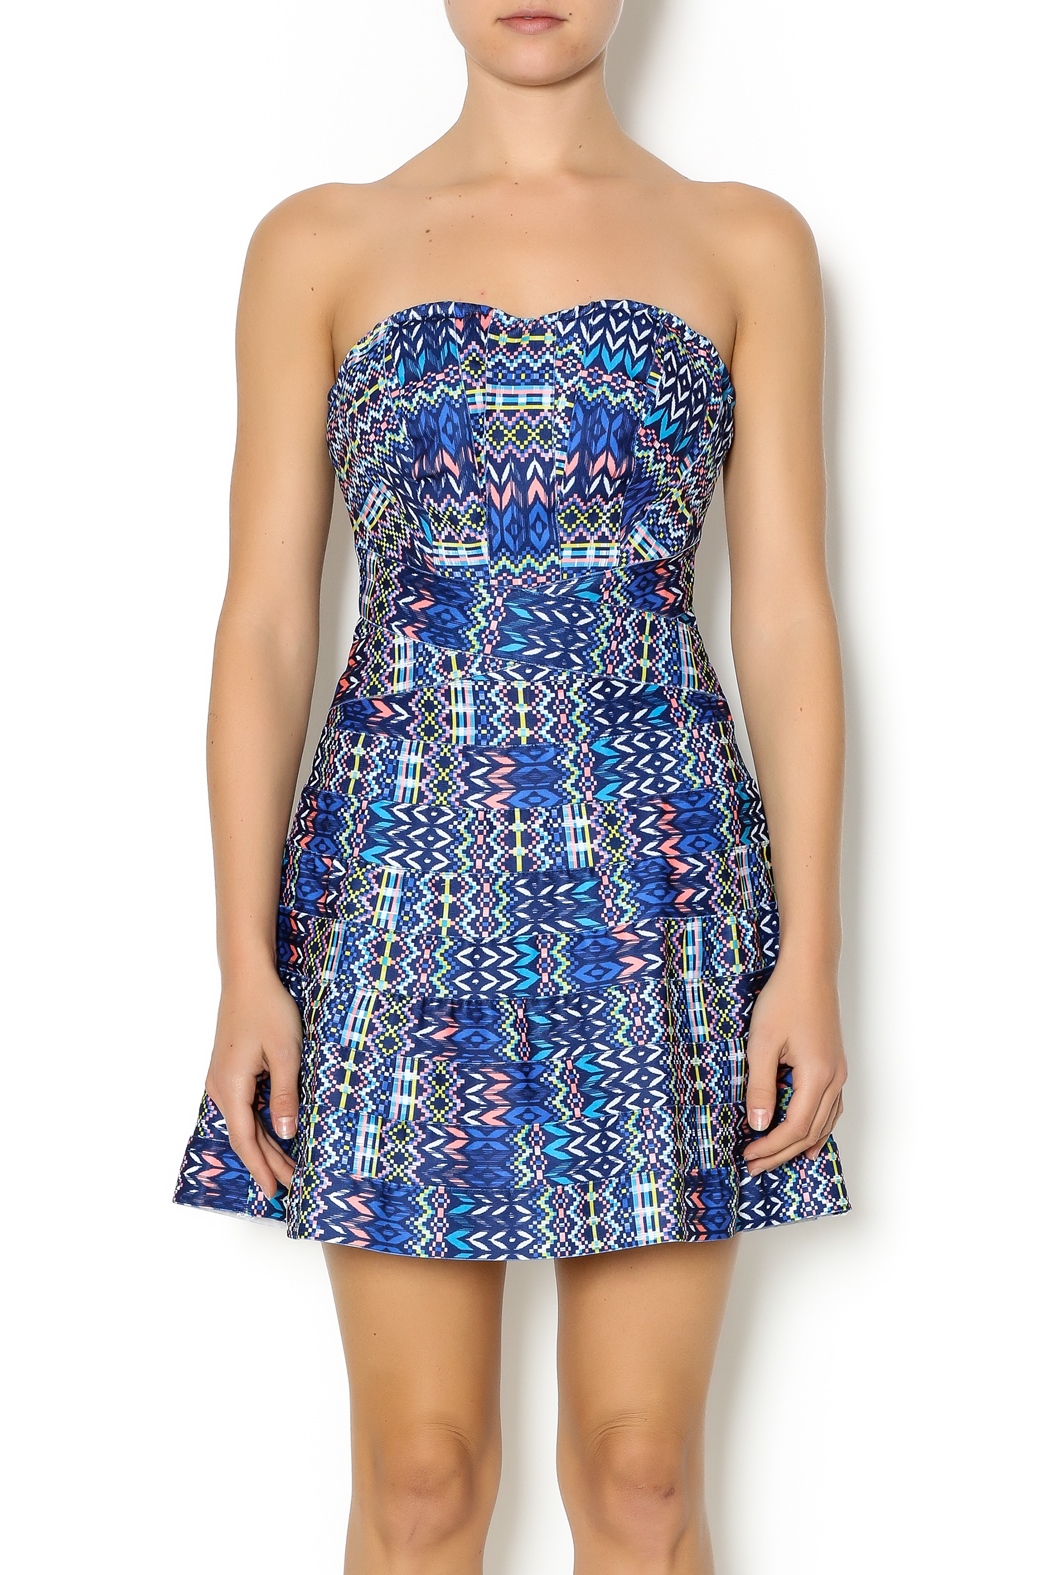 Wow Couture Blue Multi Sweetheart Dress - Main Image